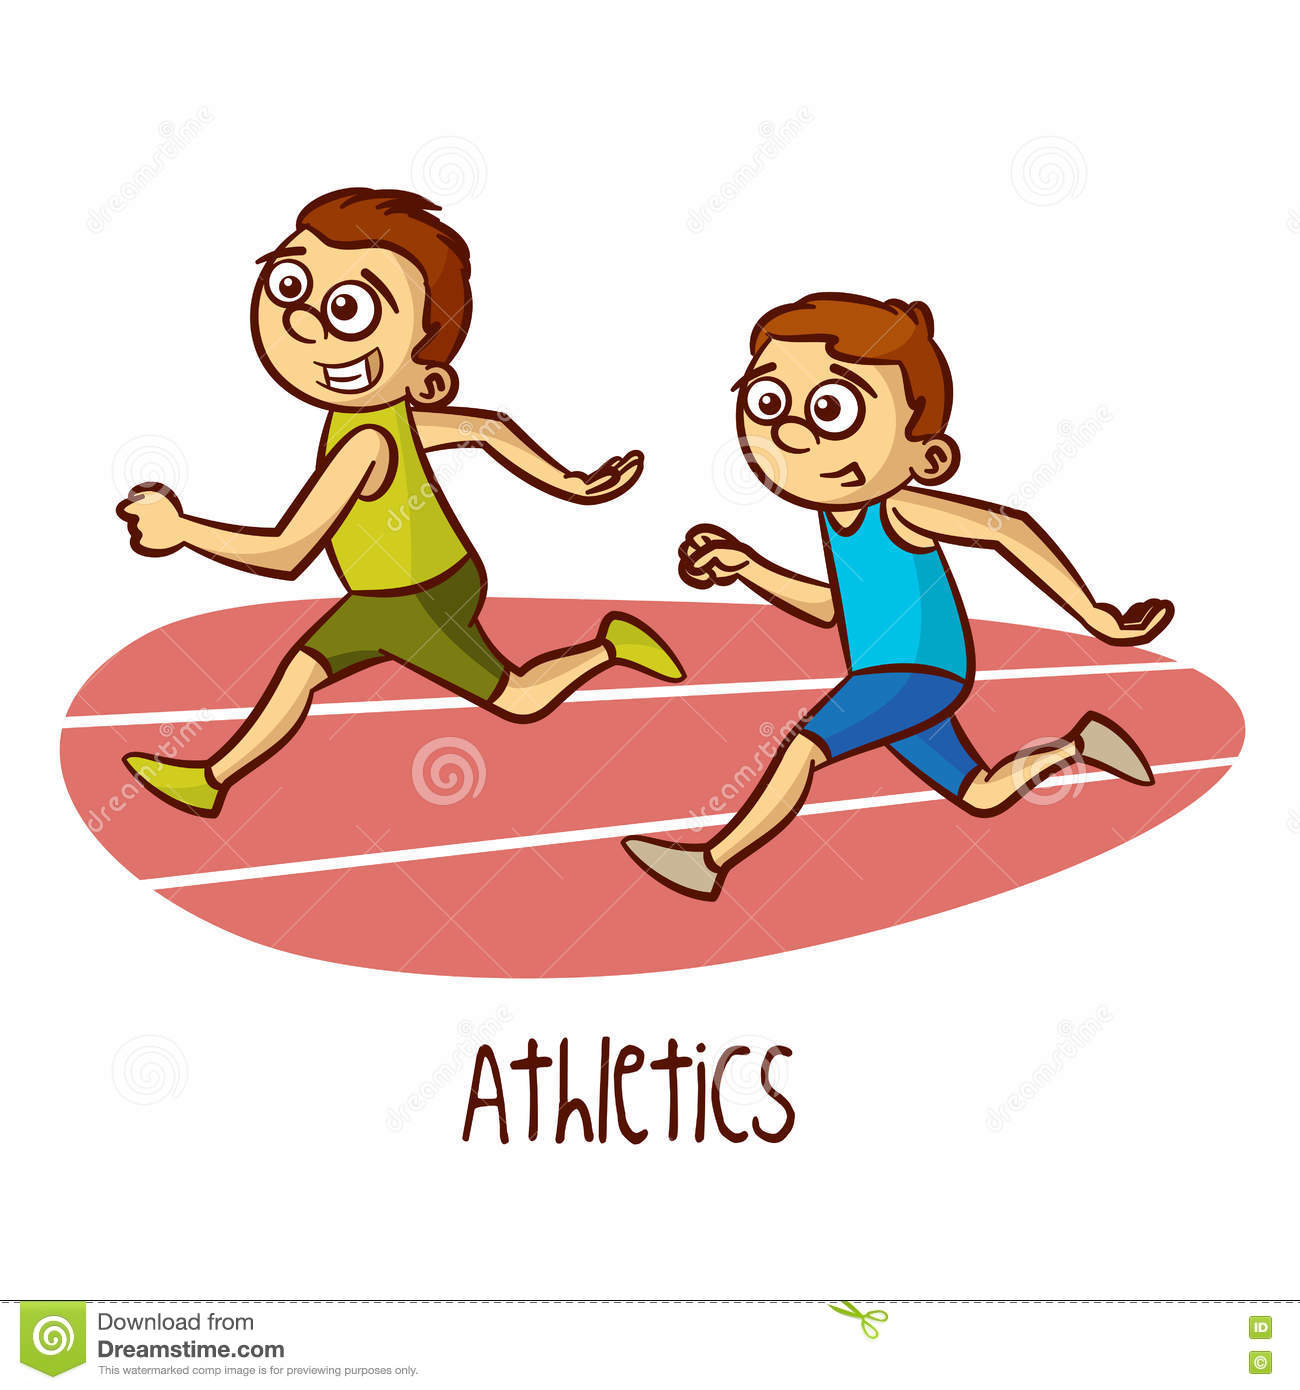 Athletic clipart exercise. Winning kid athlete pencil